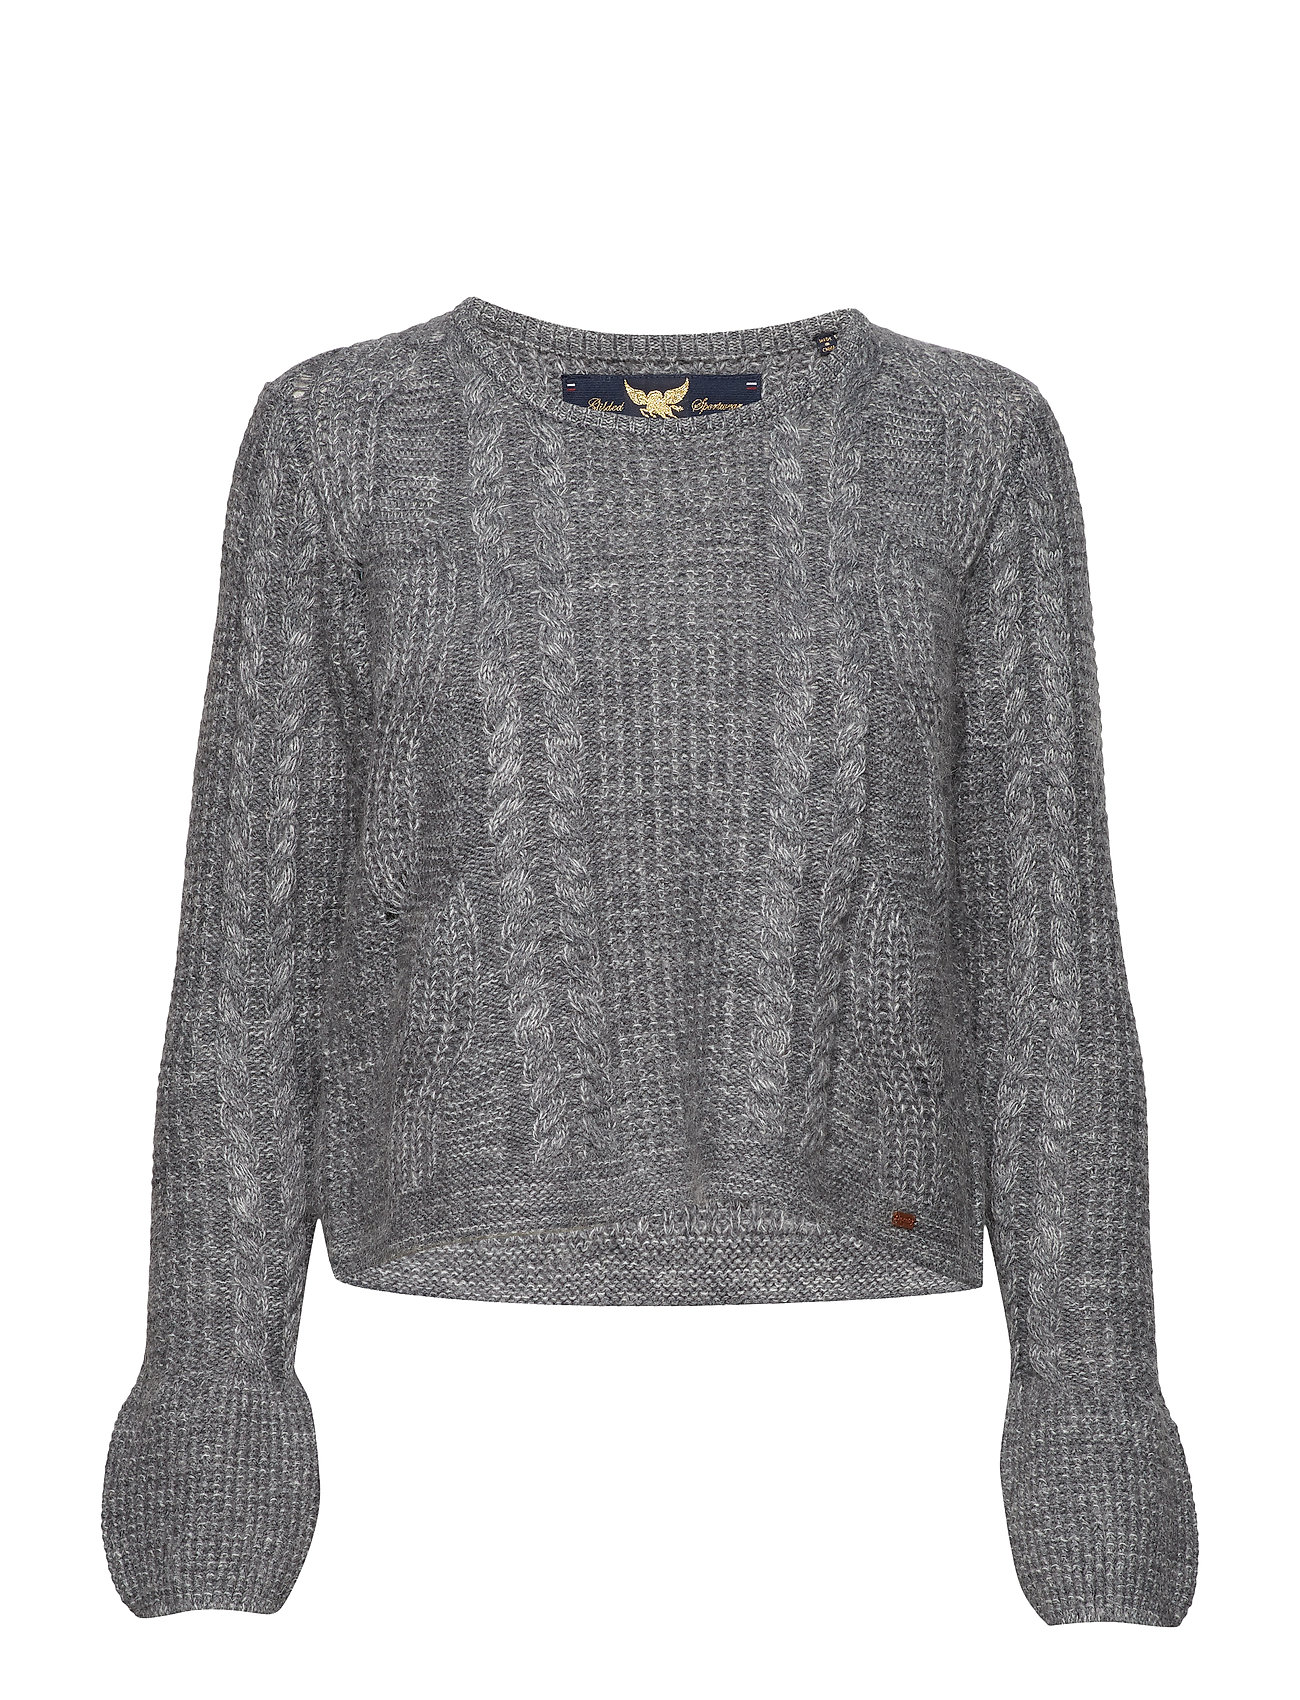 Superdry BELL SLEEVE MOHAIR CABLE KNIT - MID GREY MARL